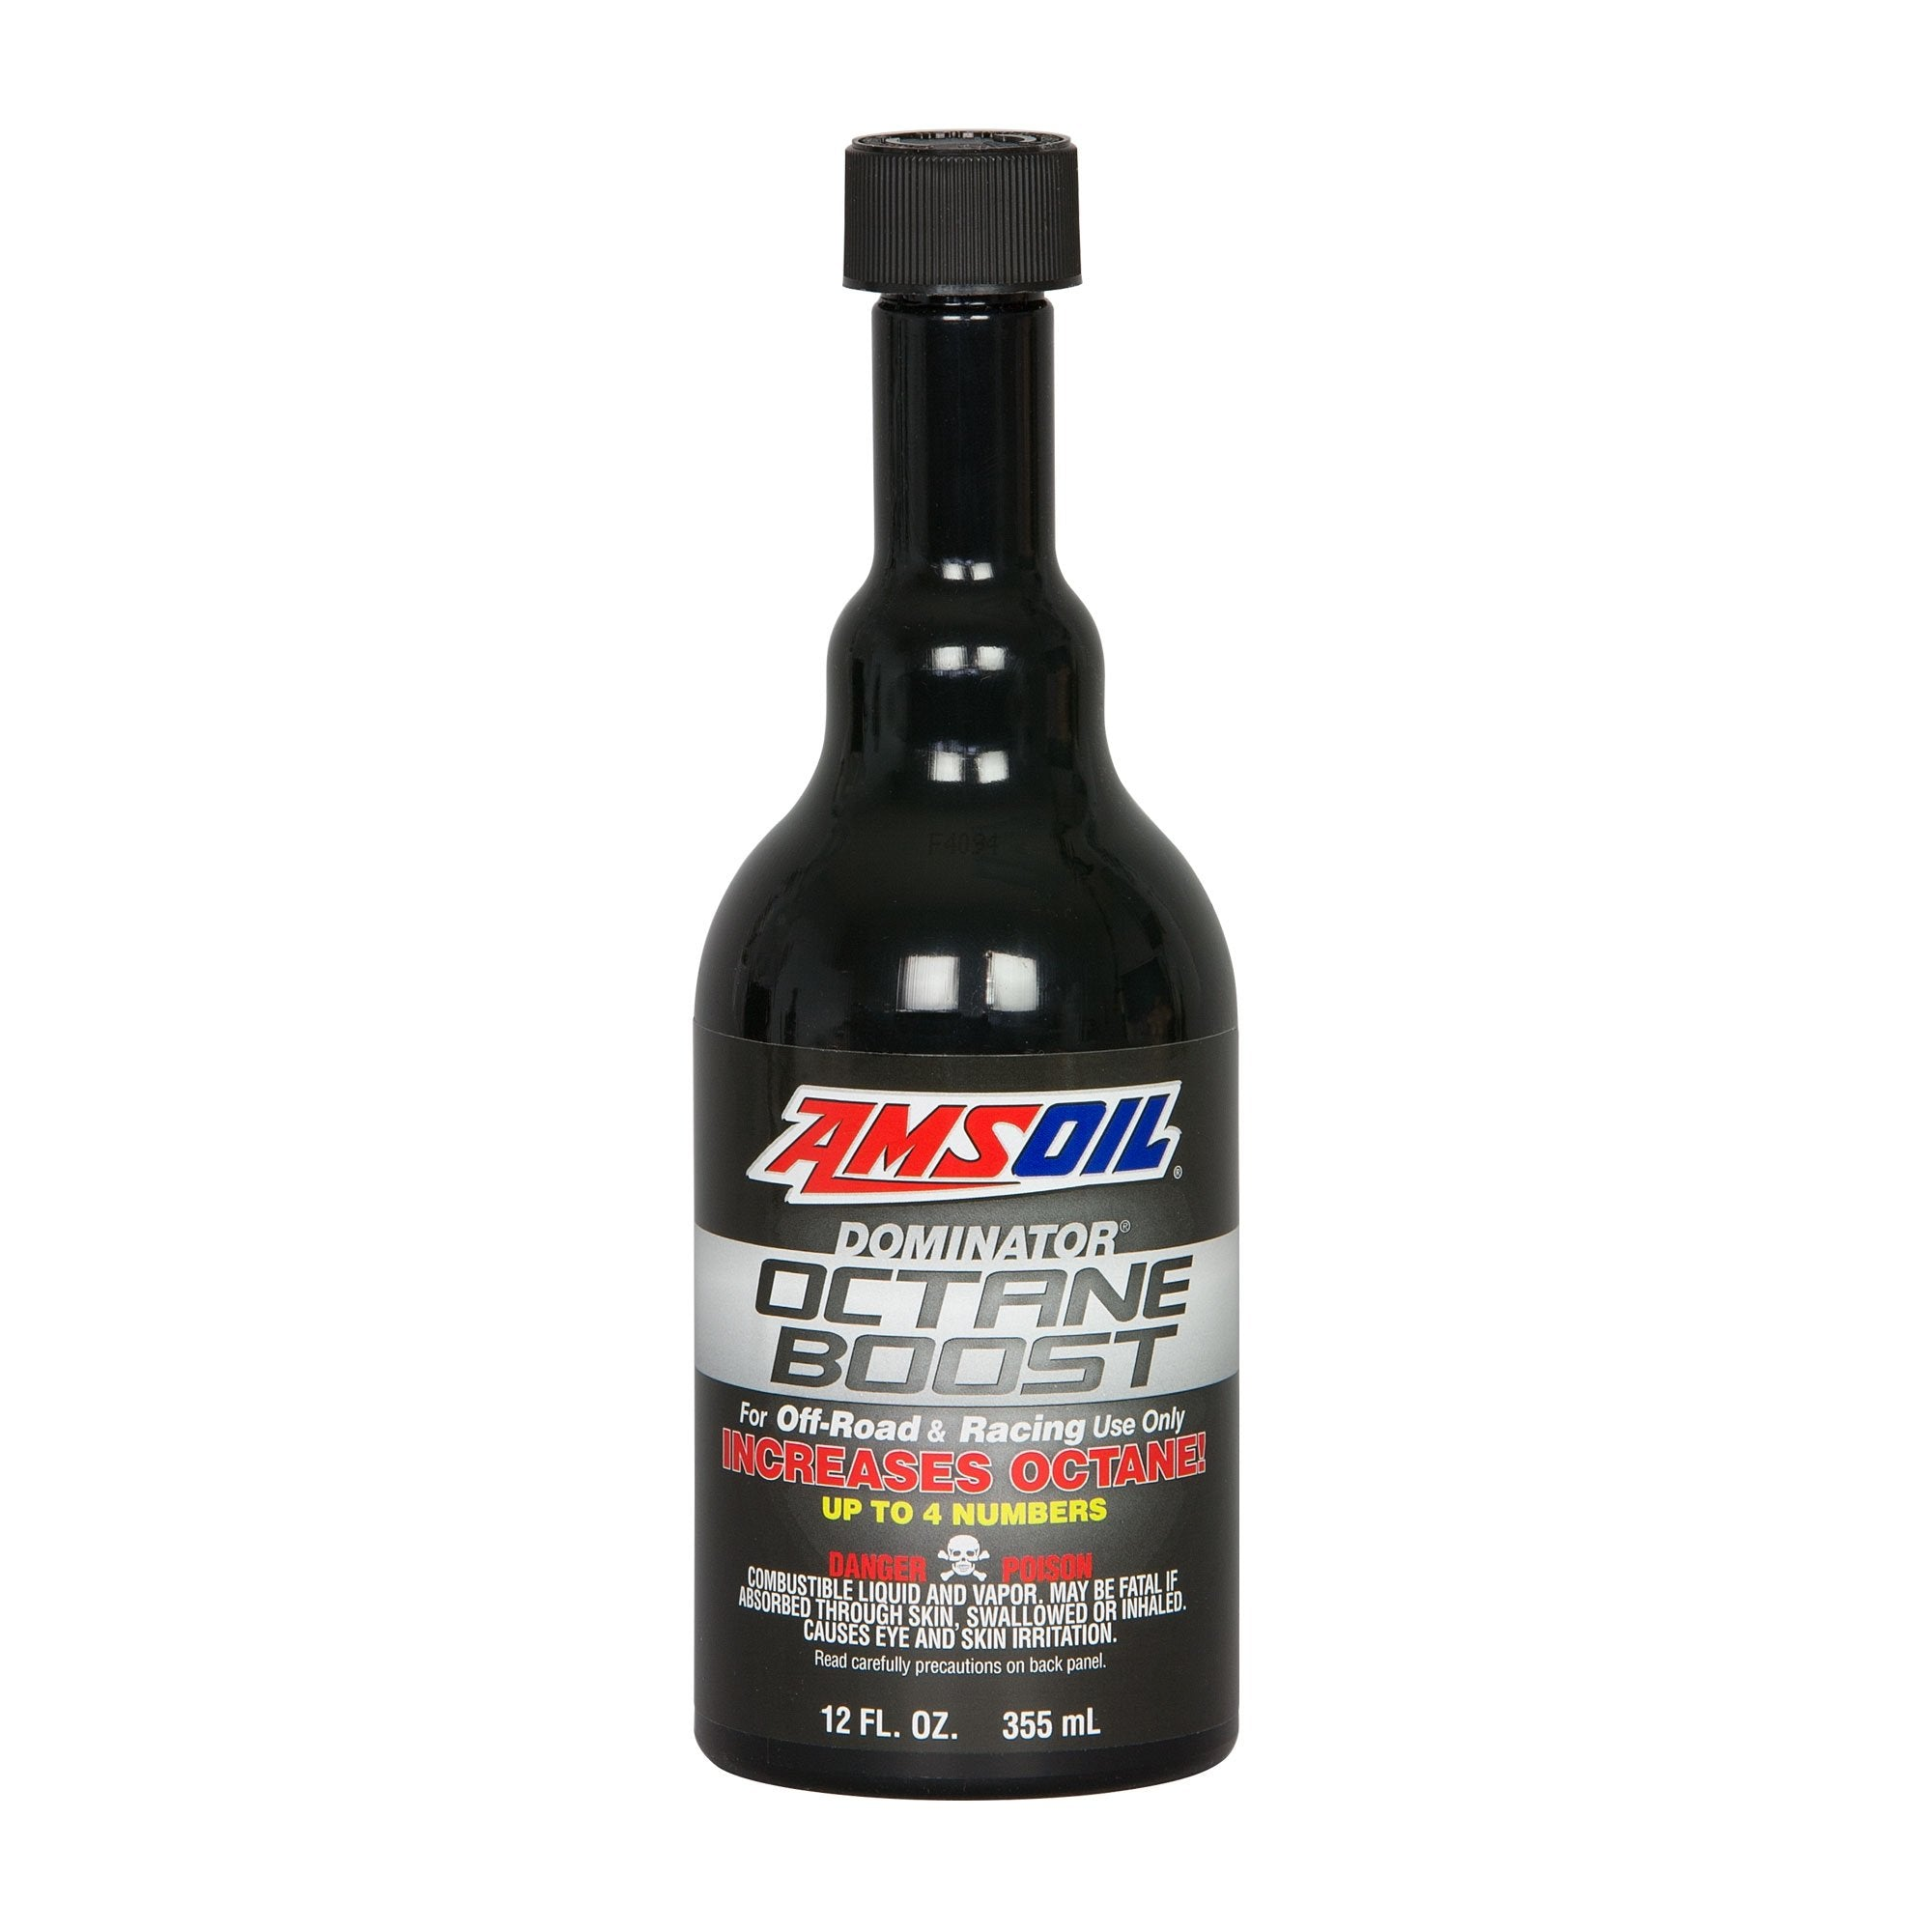 AMSOIL Dominator Octane Boost Fuel Additive 355 ml